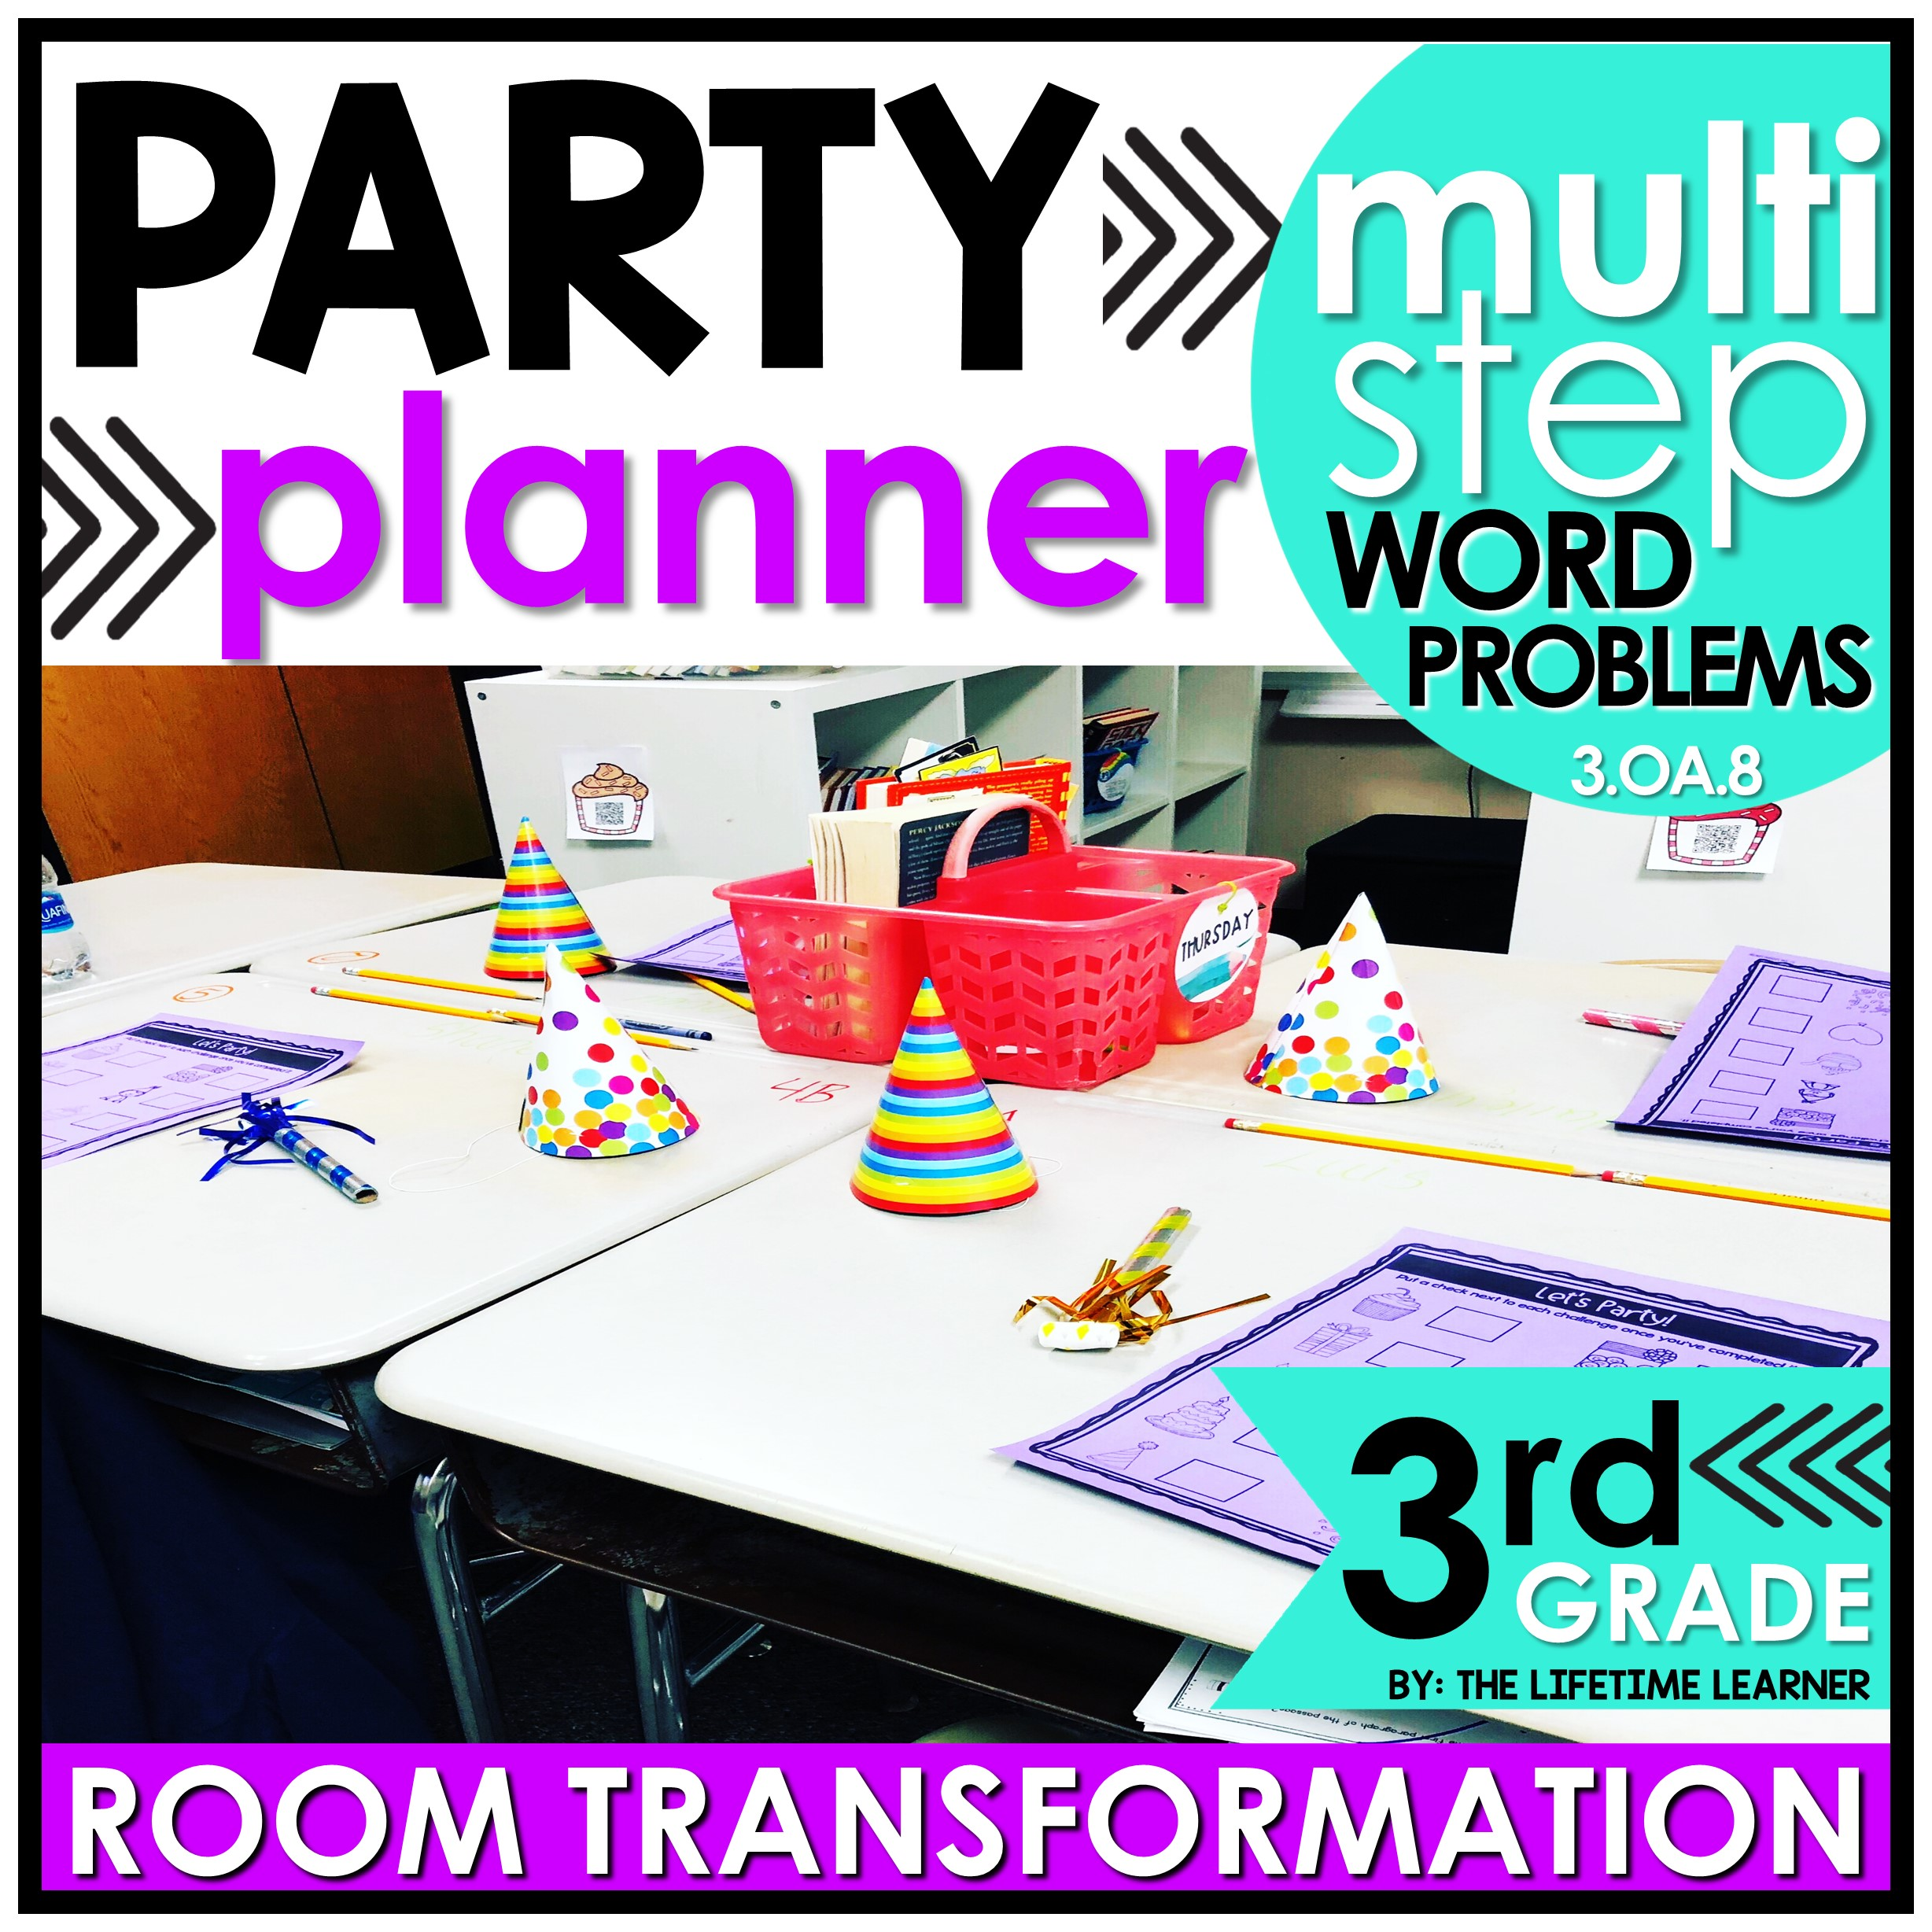 hight resolution of 3rd Grade Multi-Step Word Problems   Party Planner Classroom Transformation  - The Lifetime Learner